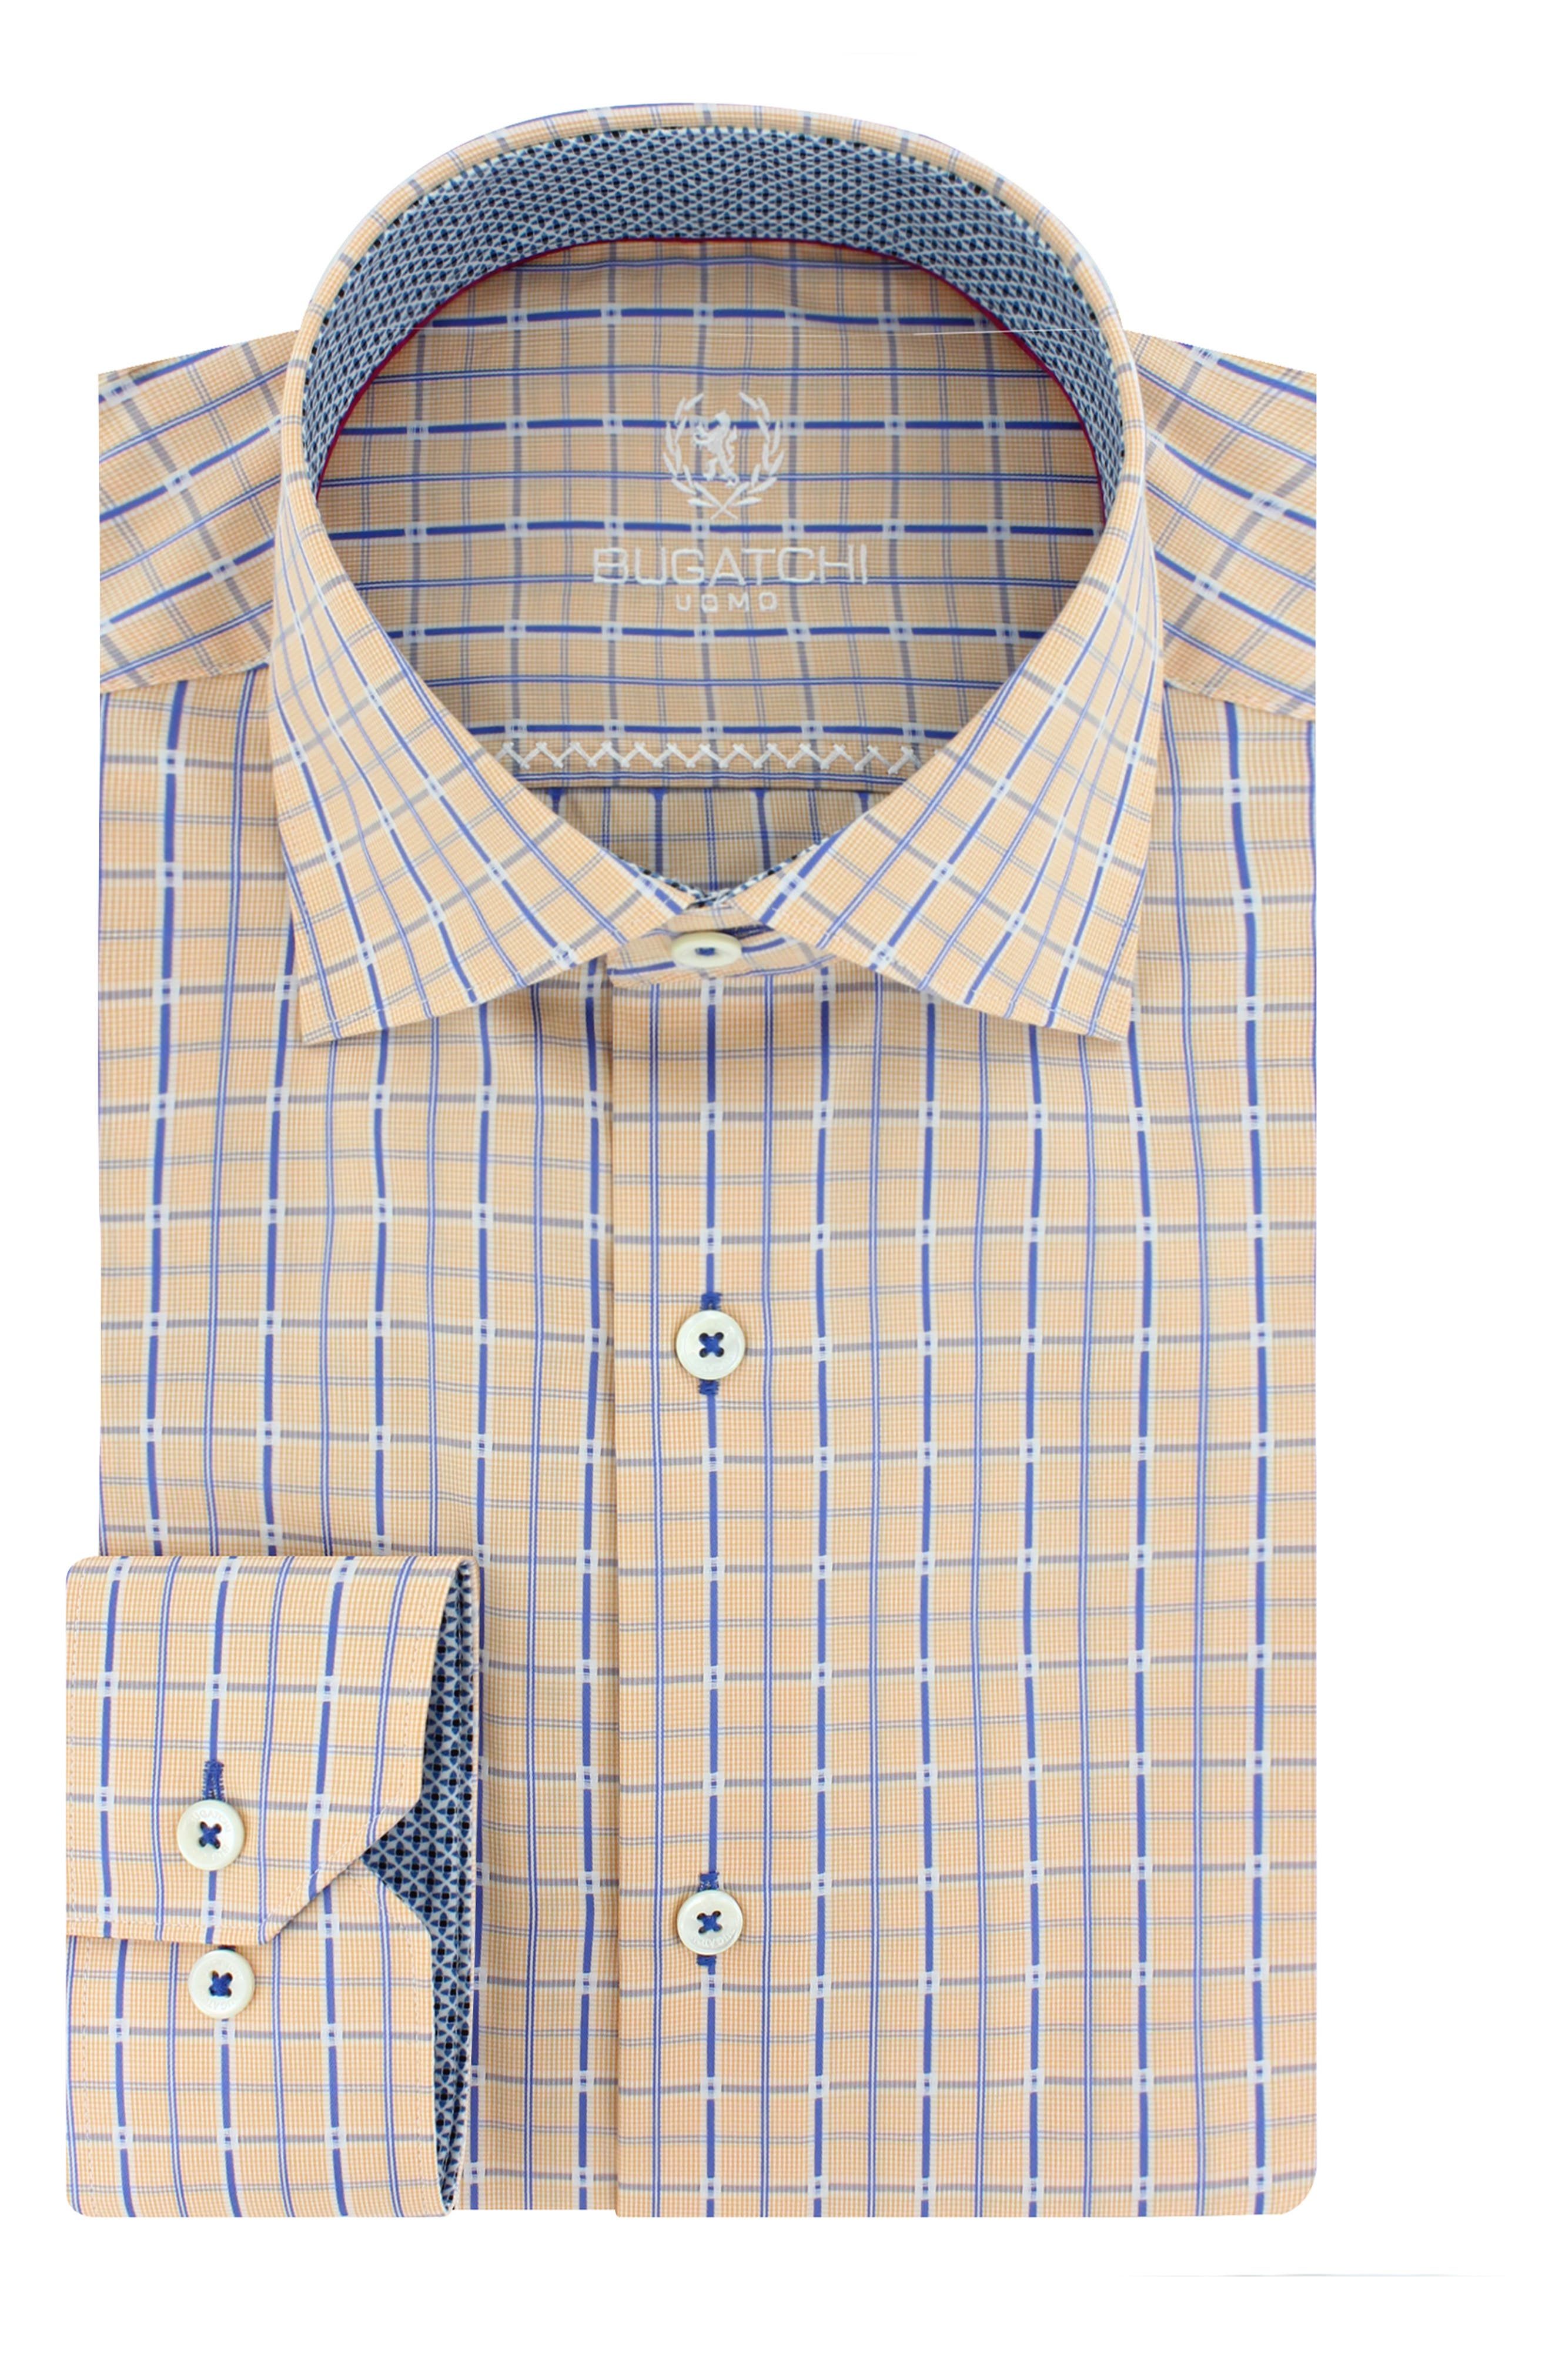 Alternate Image 1 Selected - Bugatchi Trim Fit Grid Check Dress Shirt